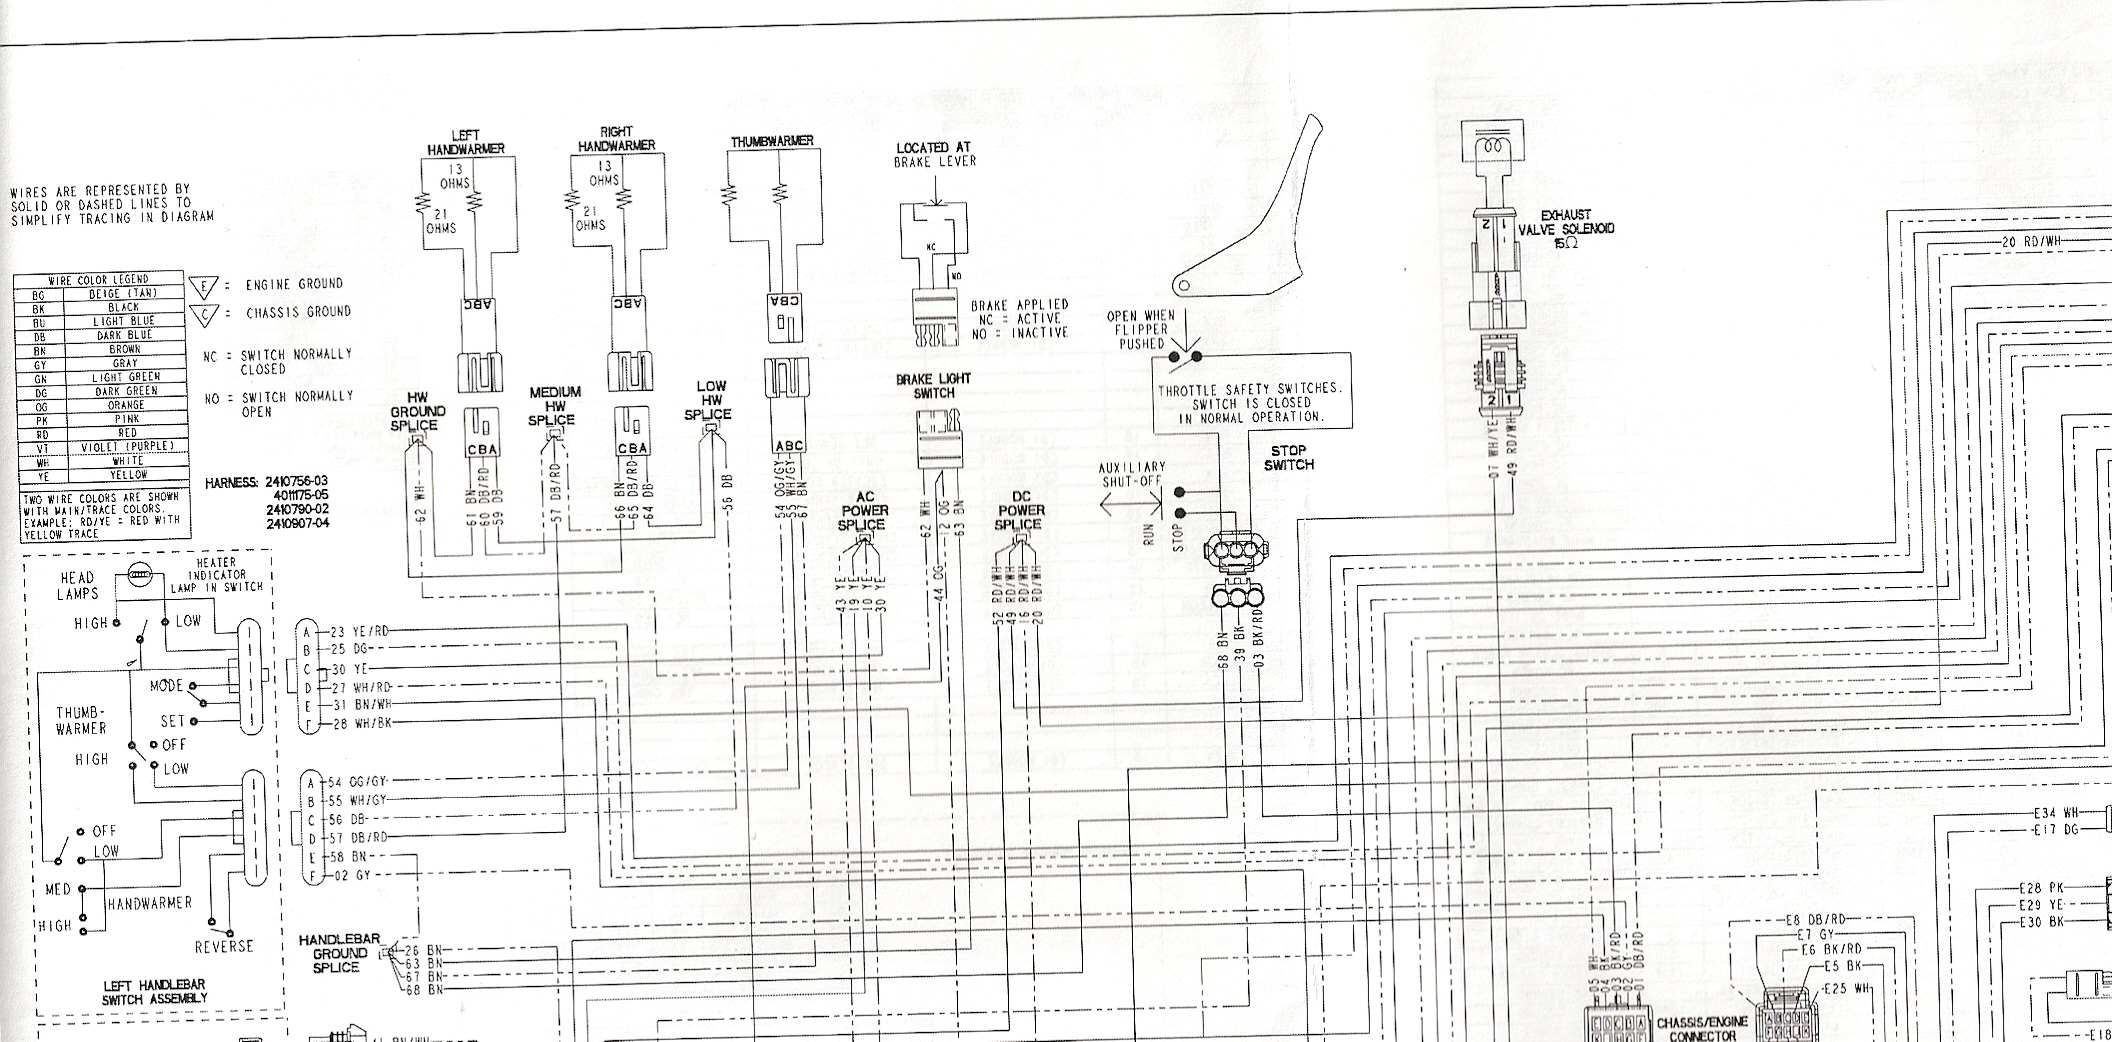 [WRG-2077] Wiring Diagram 2011 Polaris Ranger 400